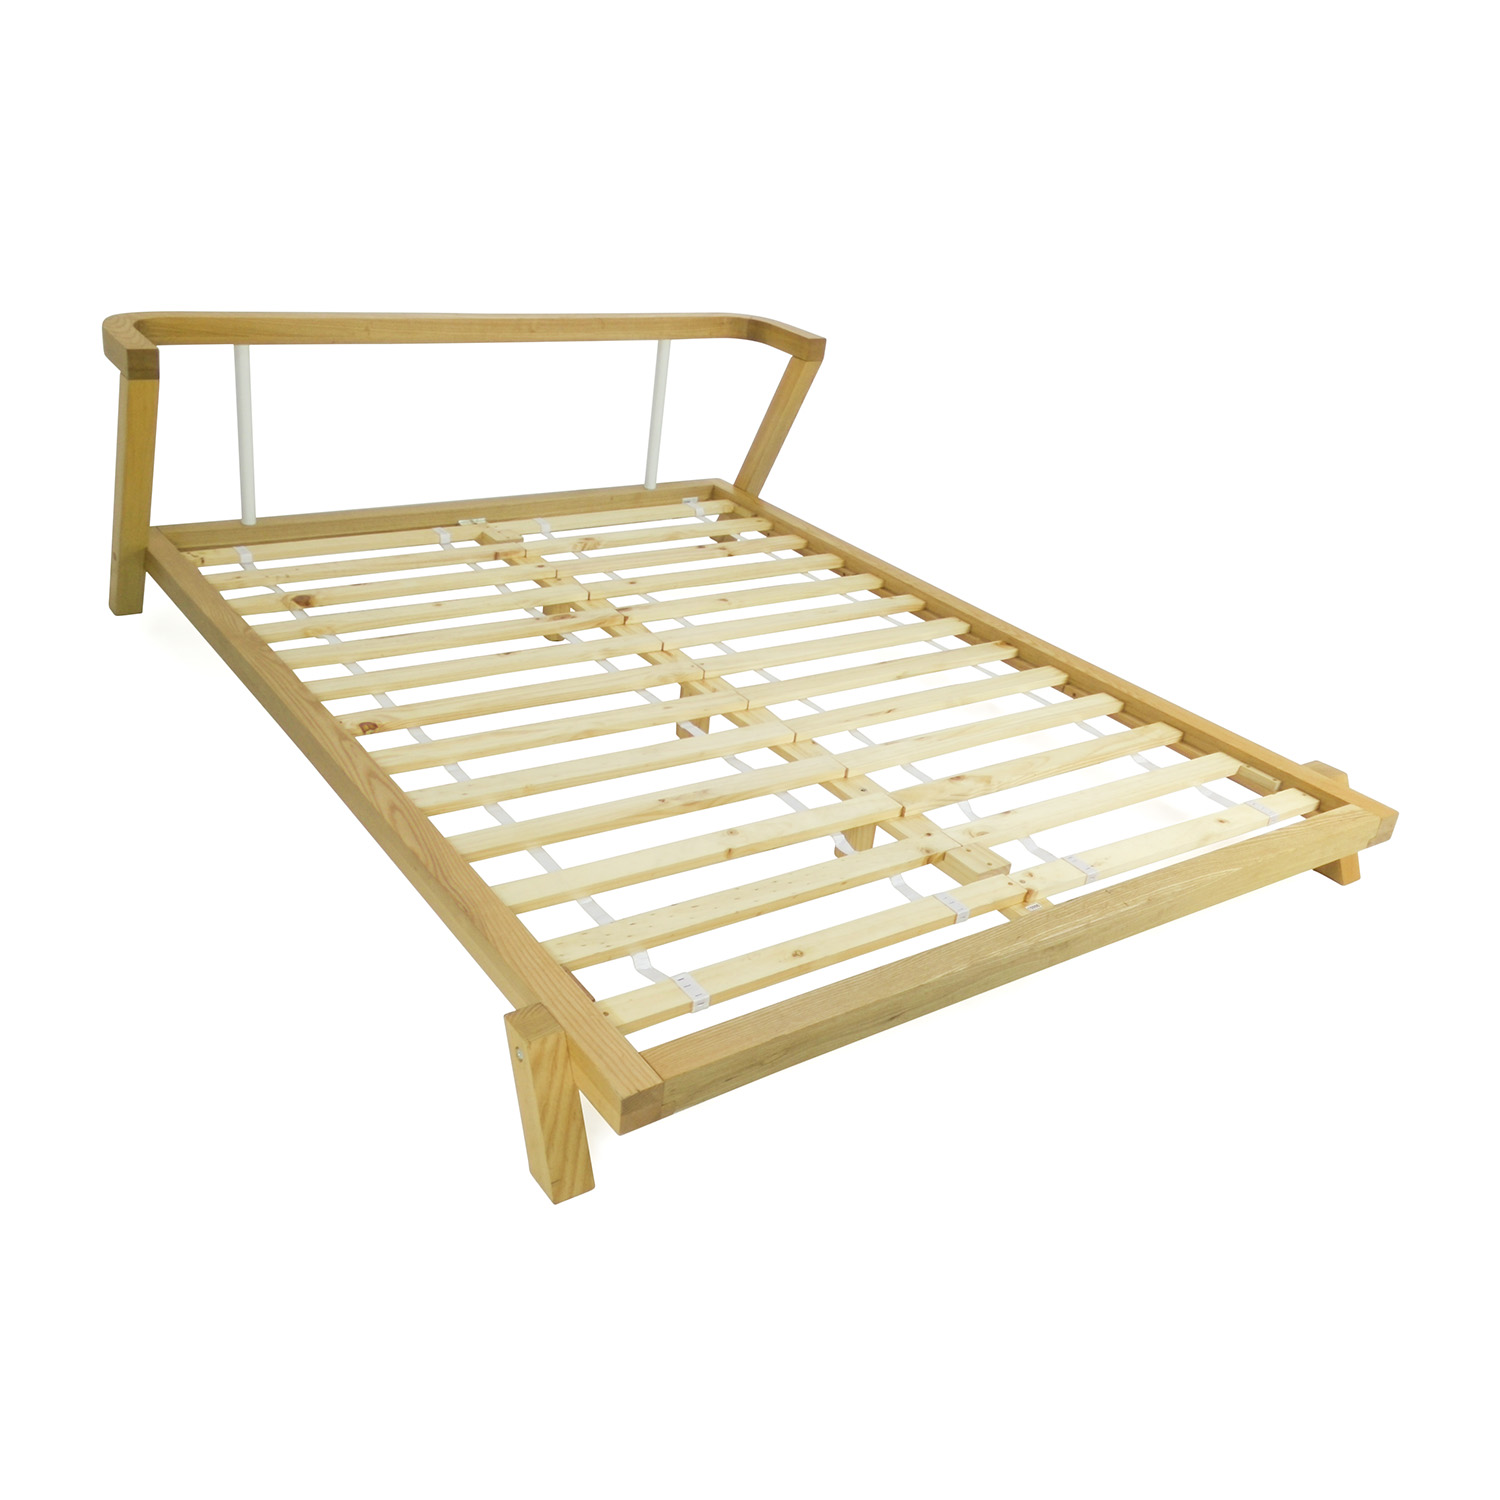 CB2 CB2 Siesta Queen Size Bed Beds